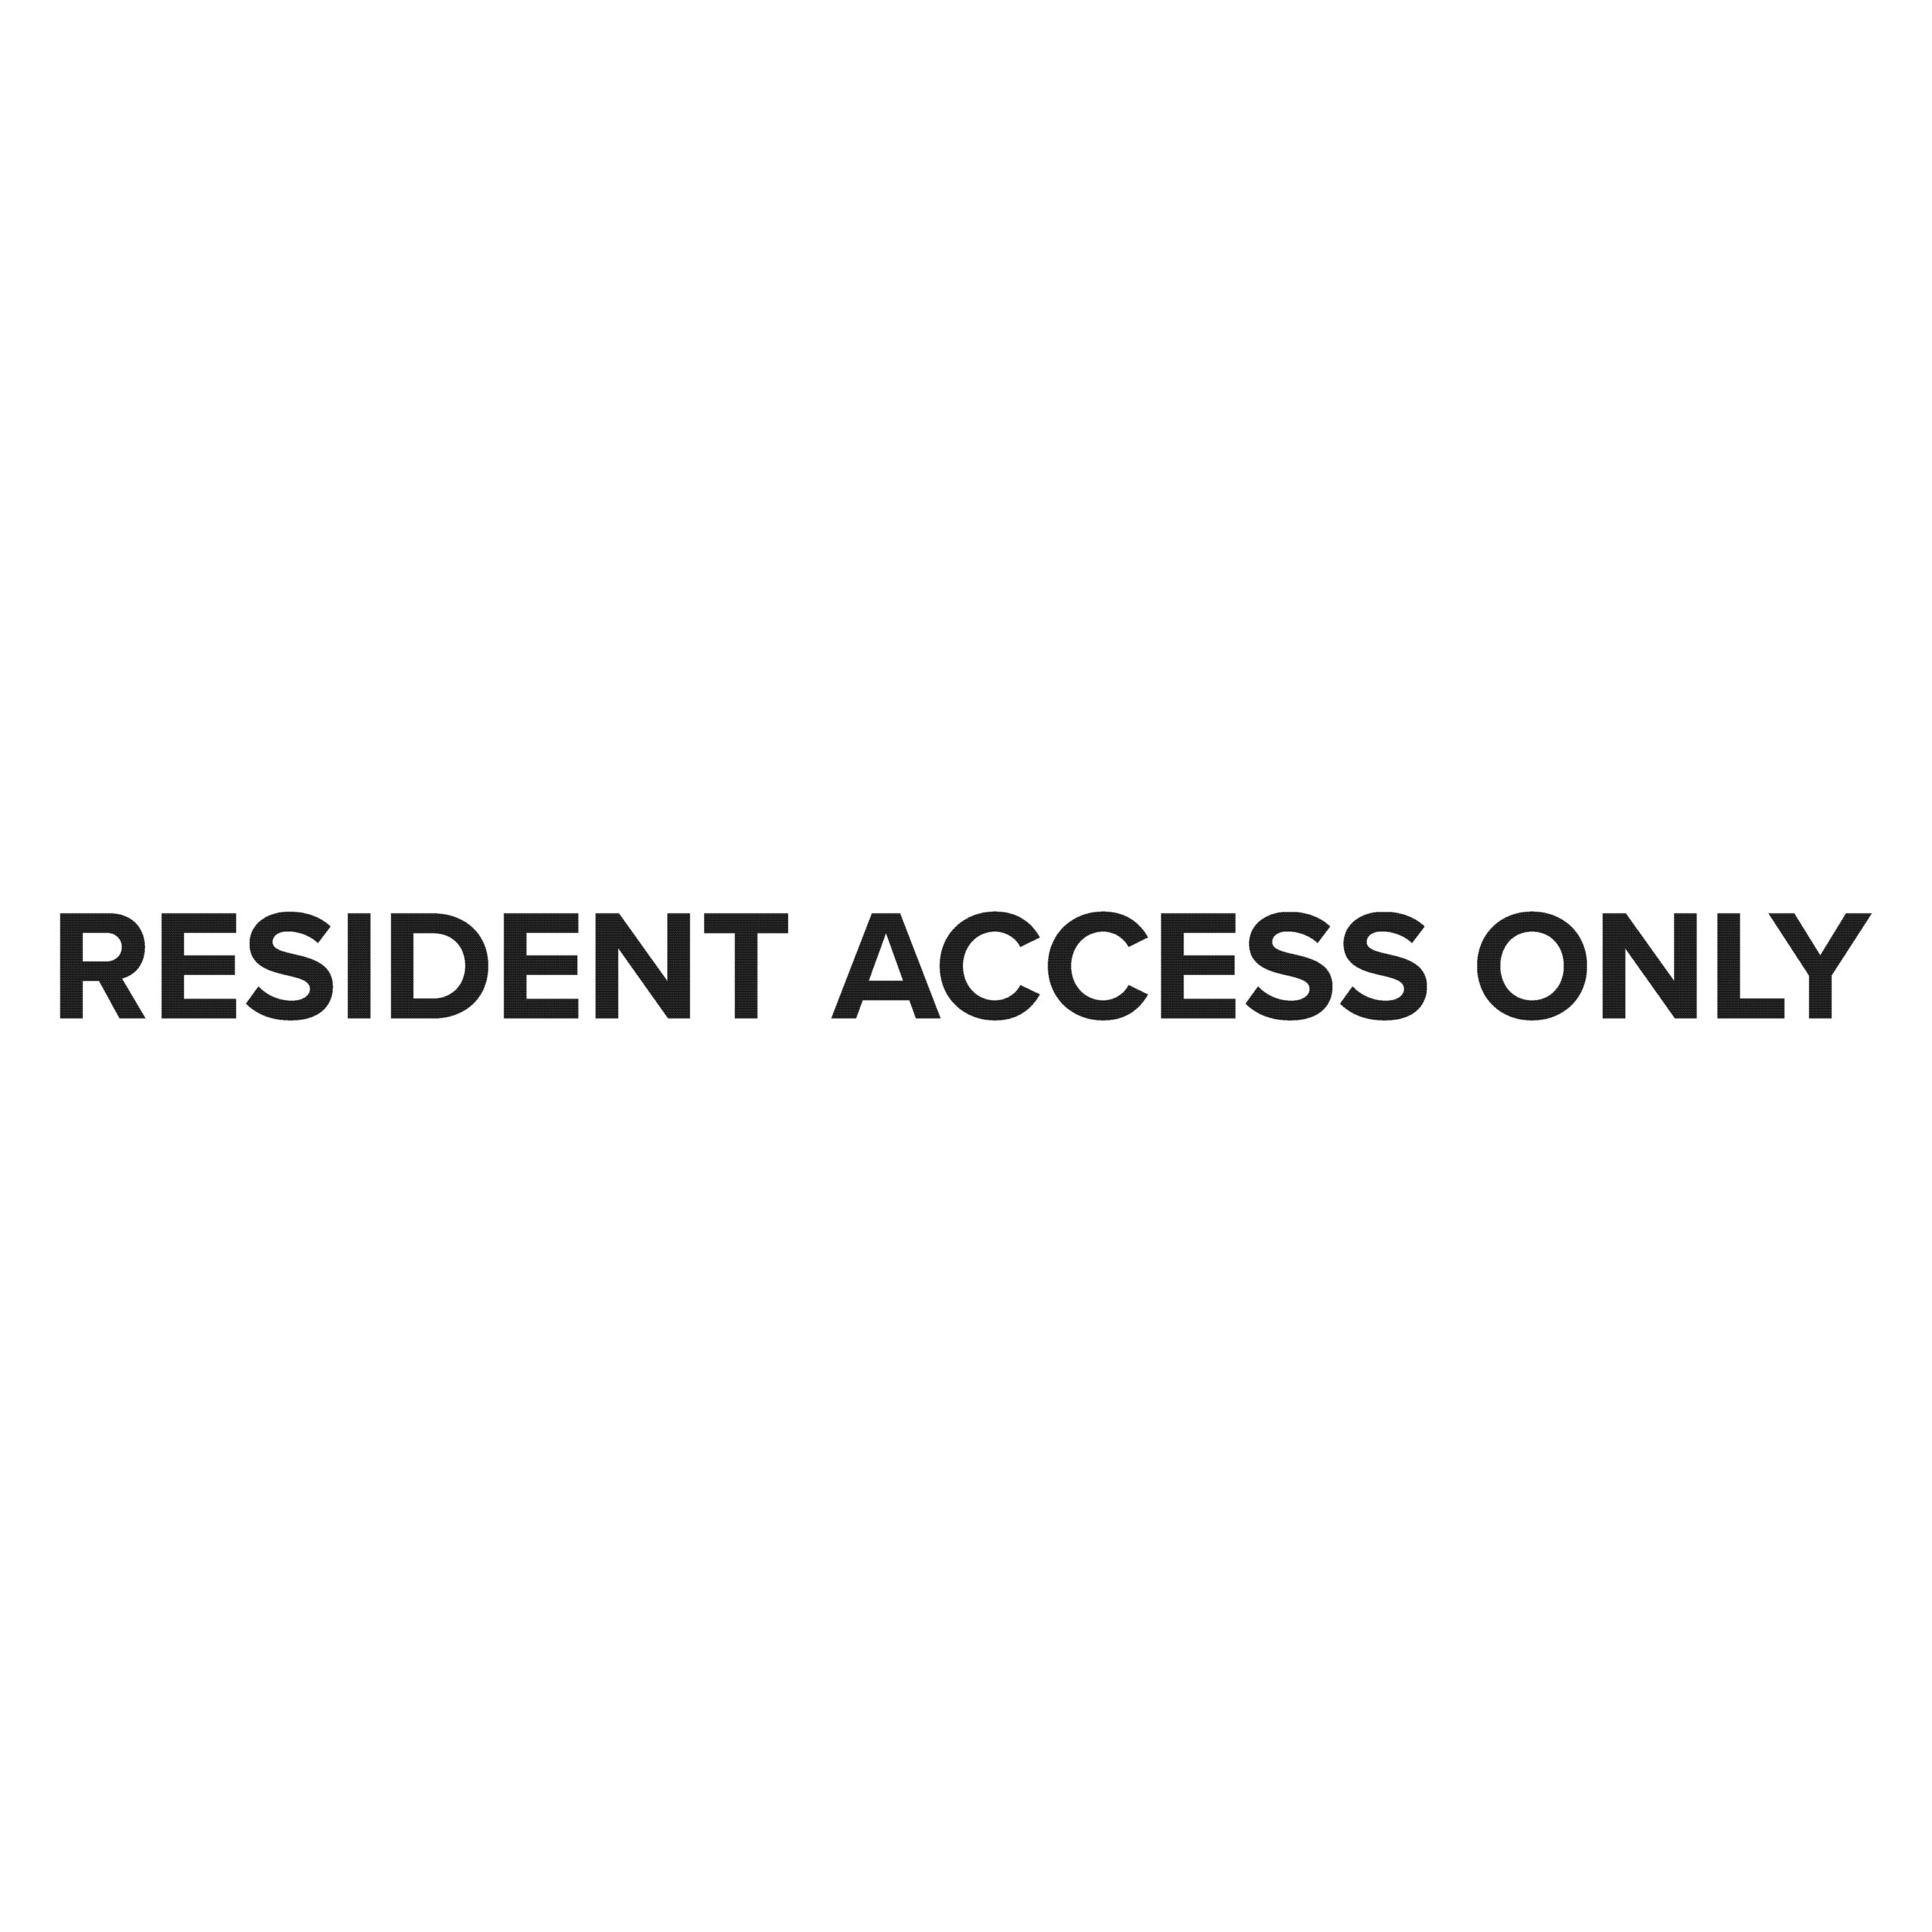 resident access only sign scaled